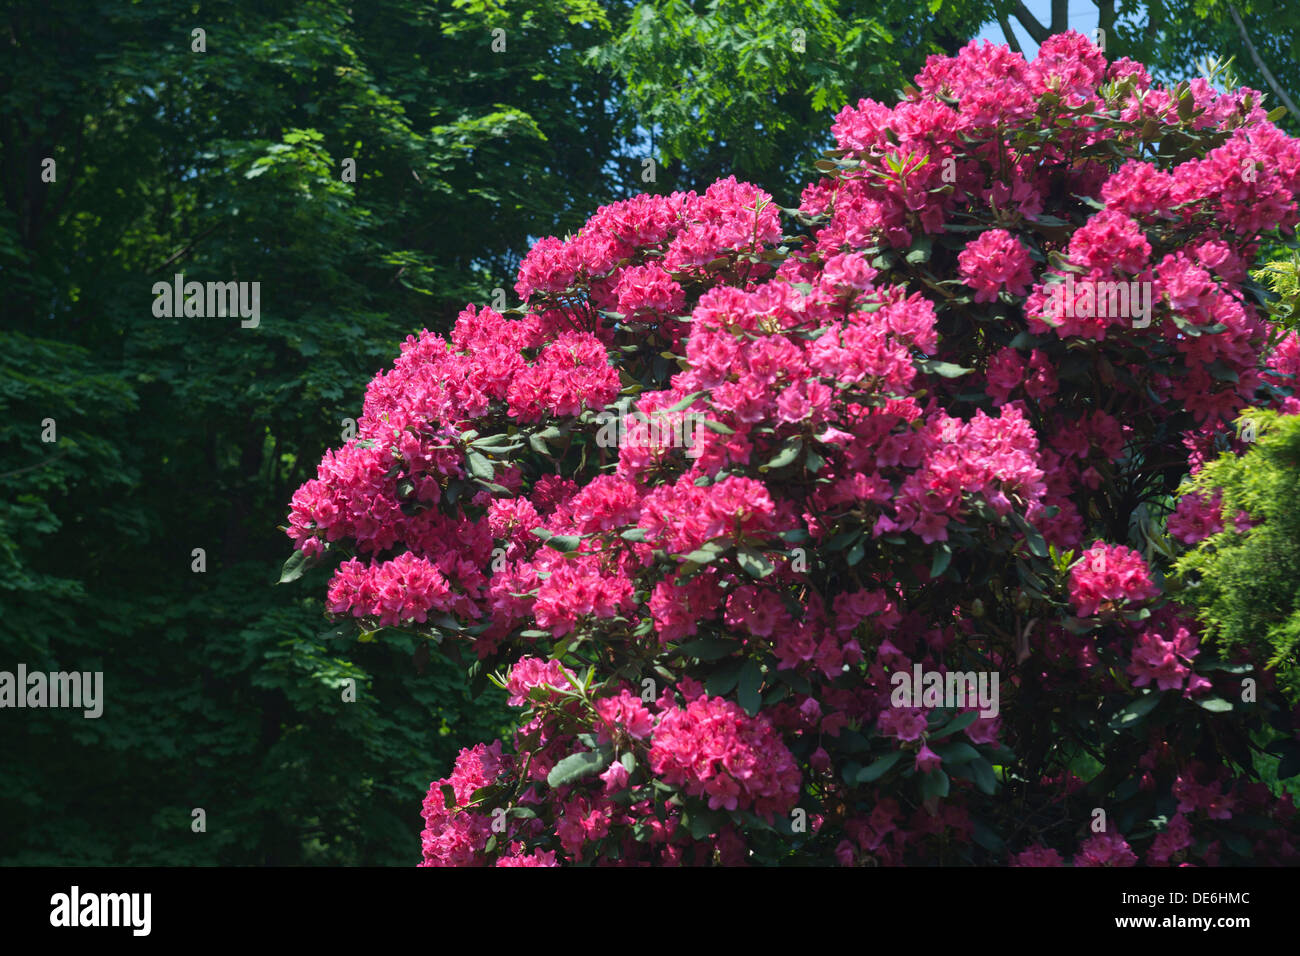 SPRINGTIME PINK BLOSSOMS RHODODENDRON SHRUB - Stock Image